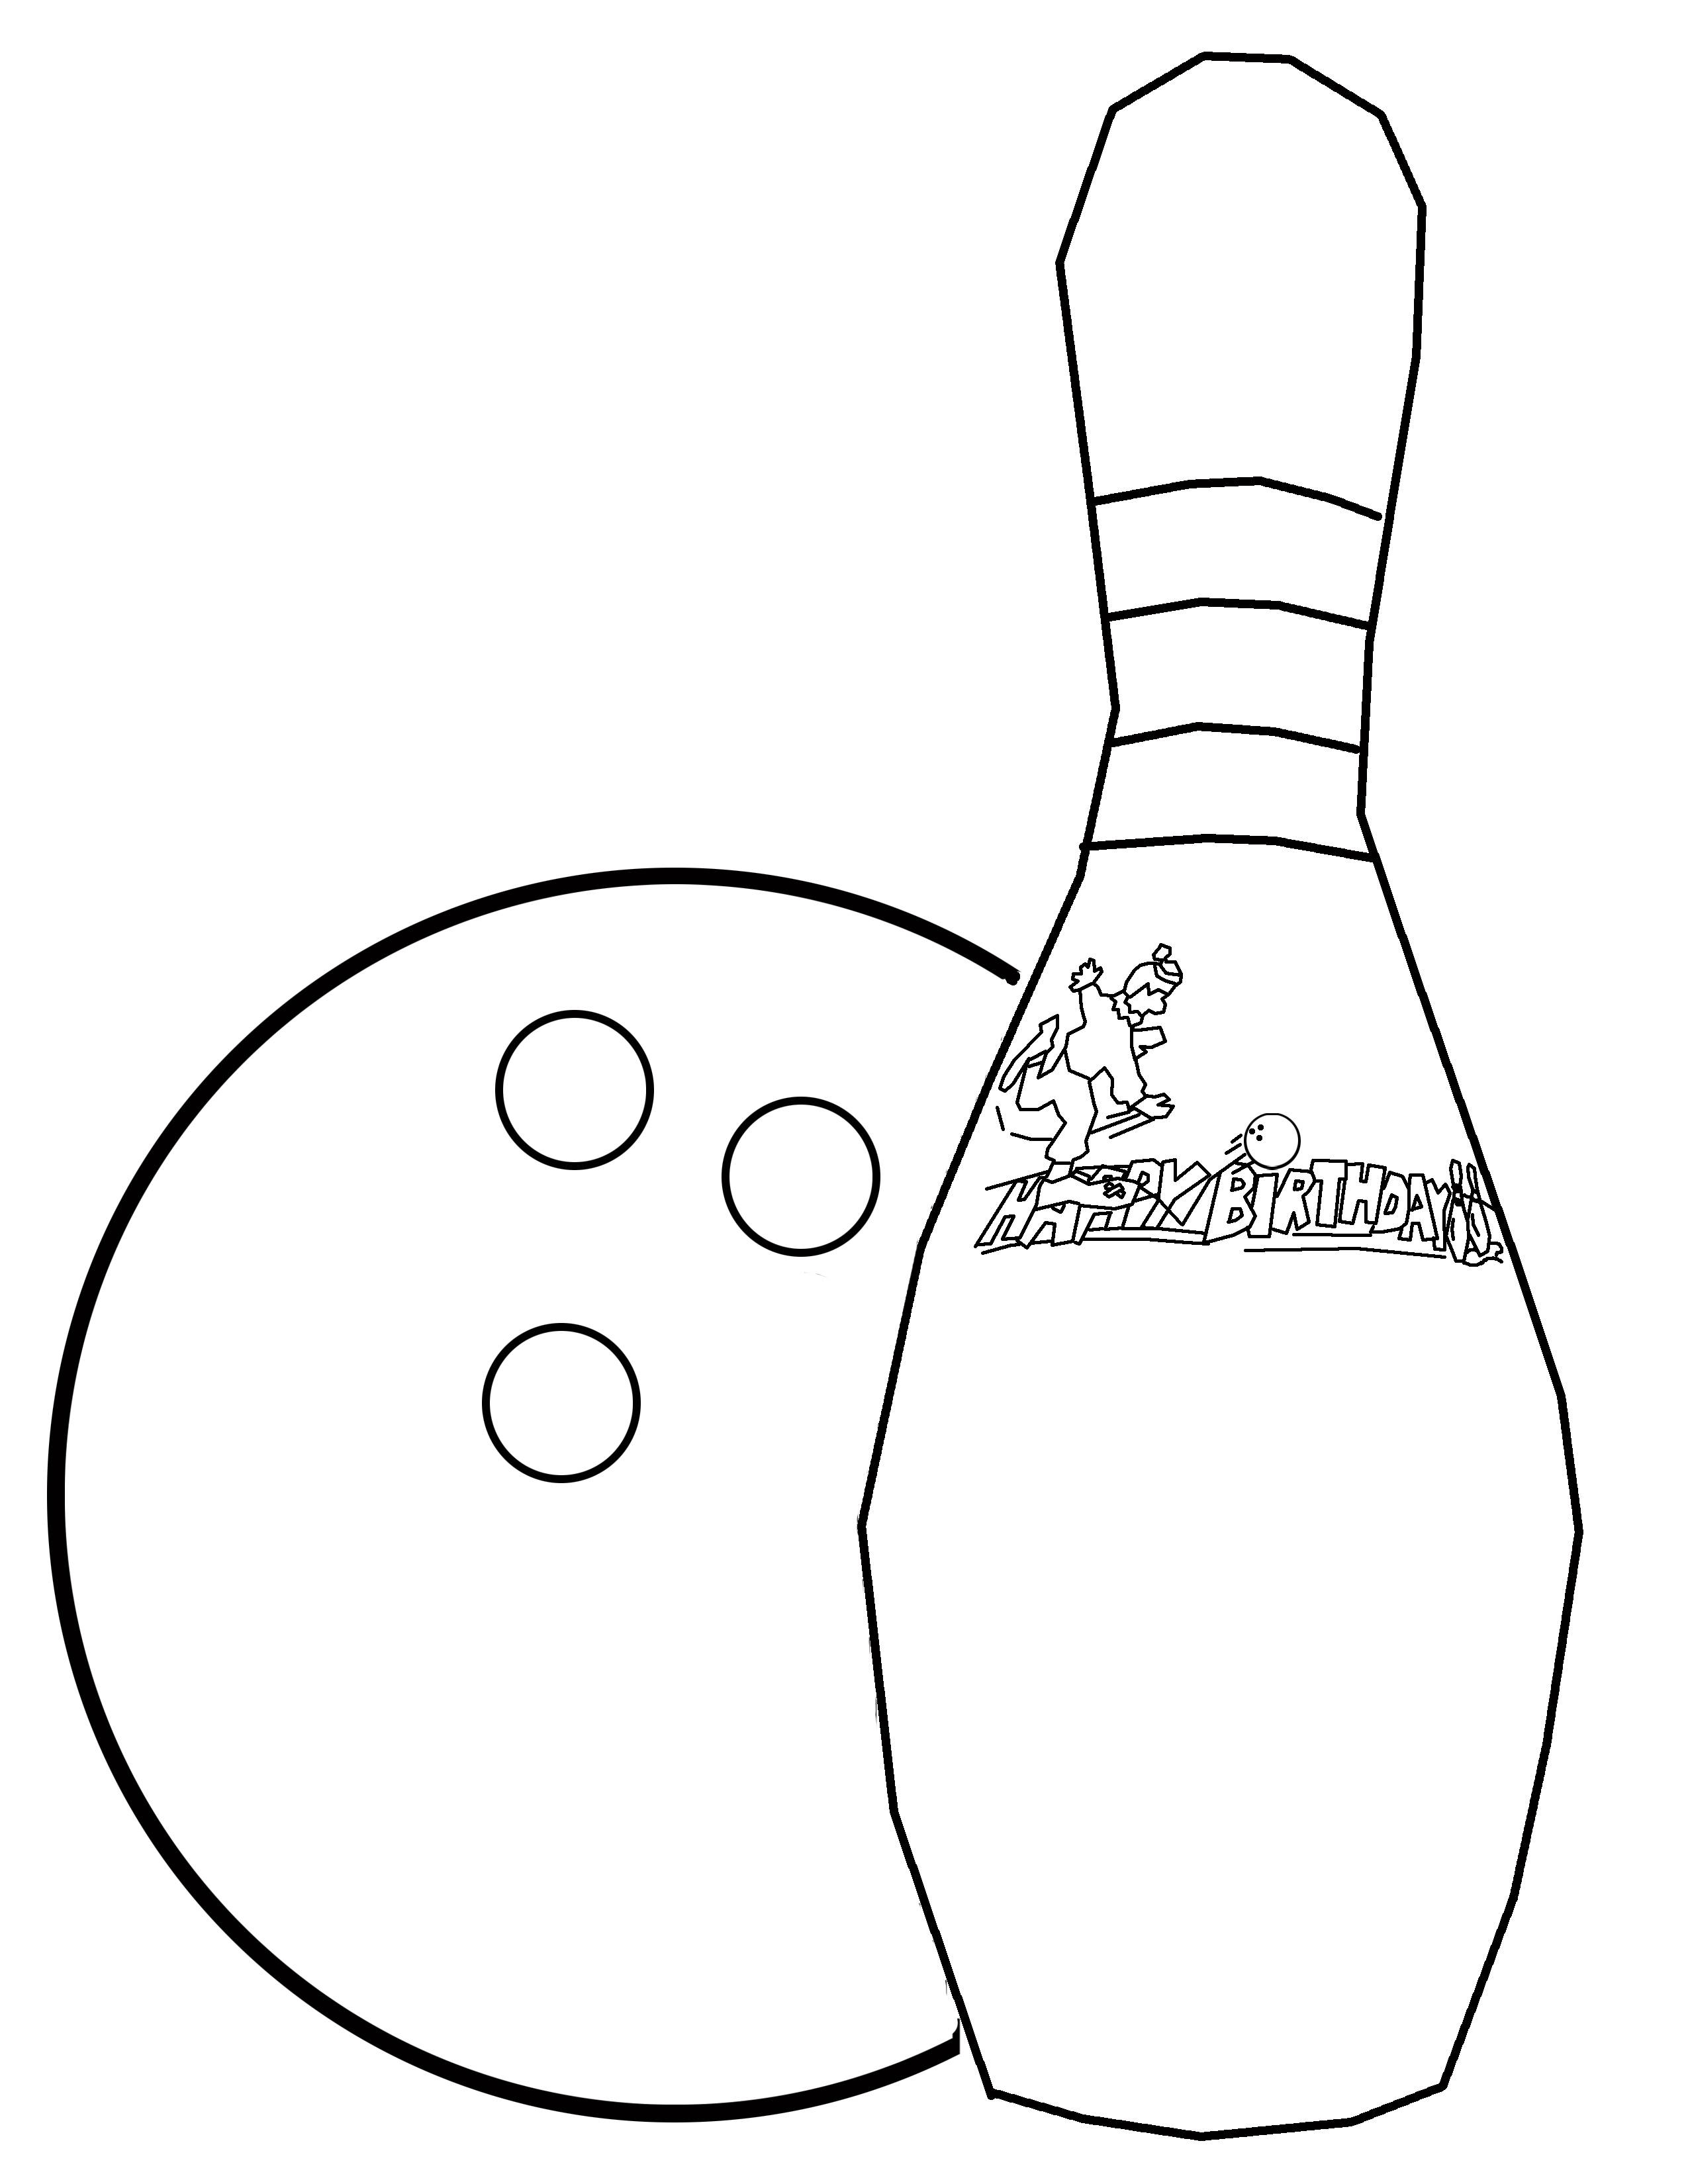 Free Bowling Pin Outline Download Free Clip Art Free